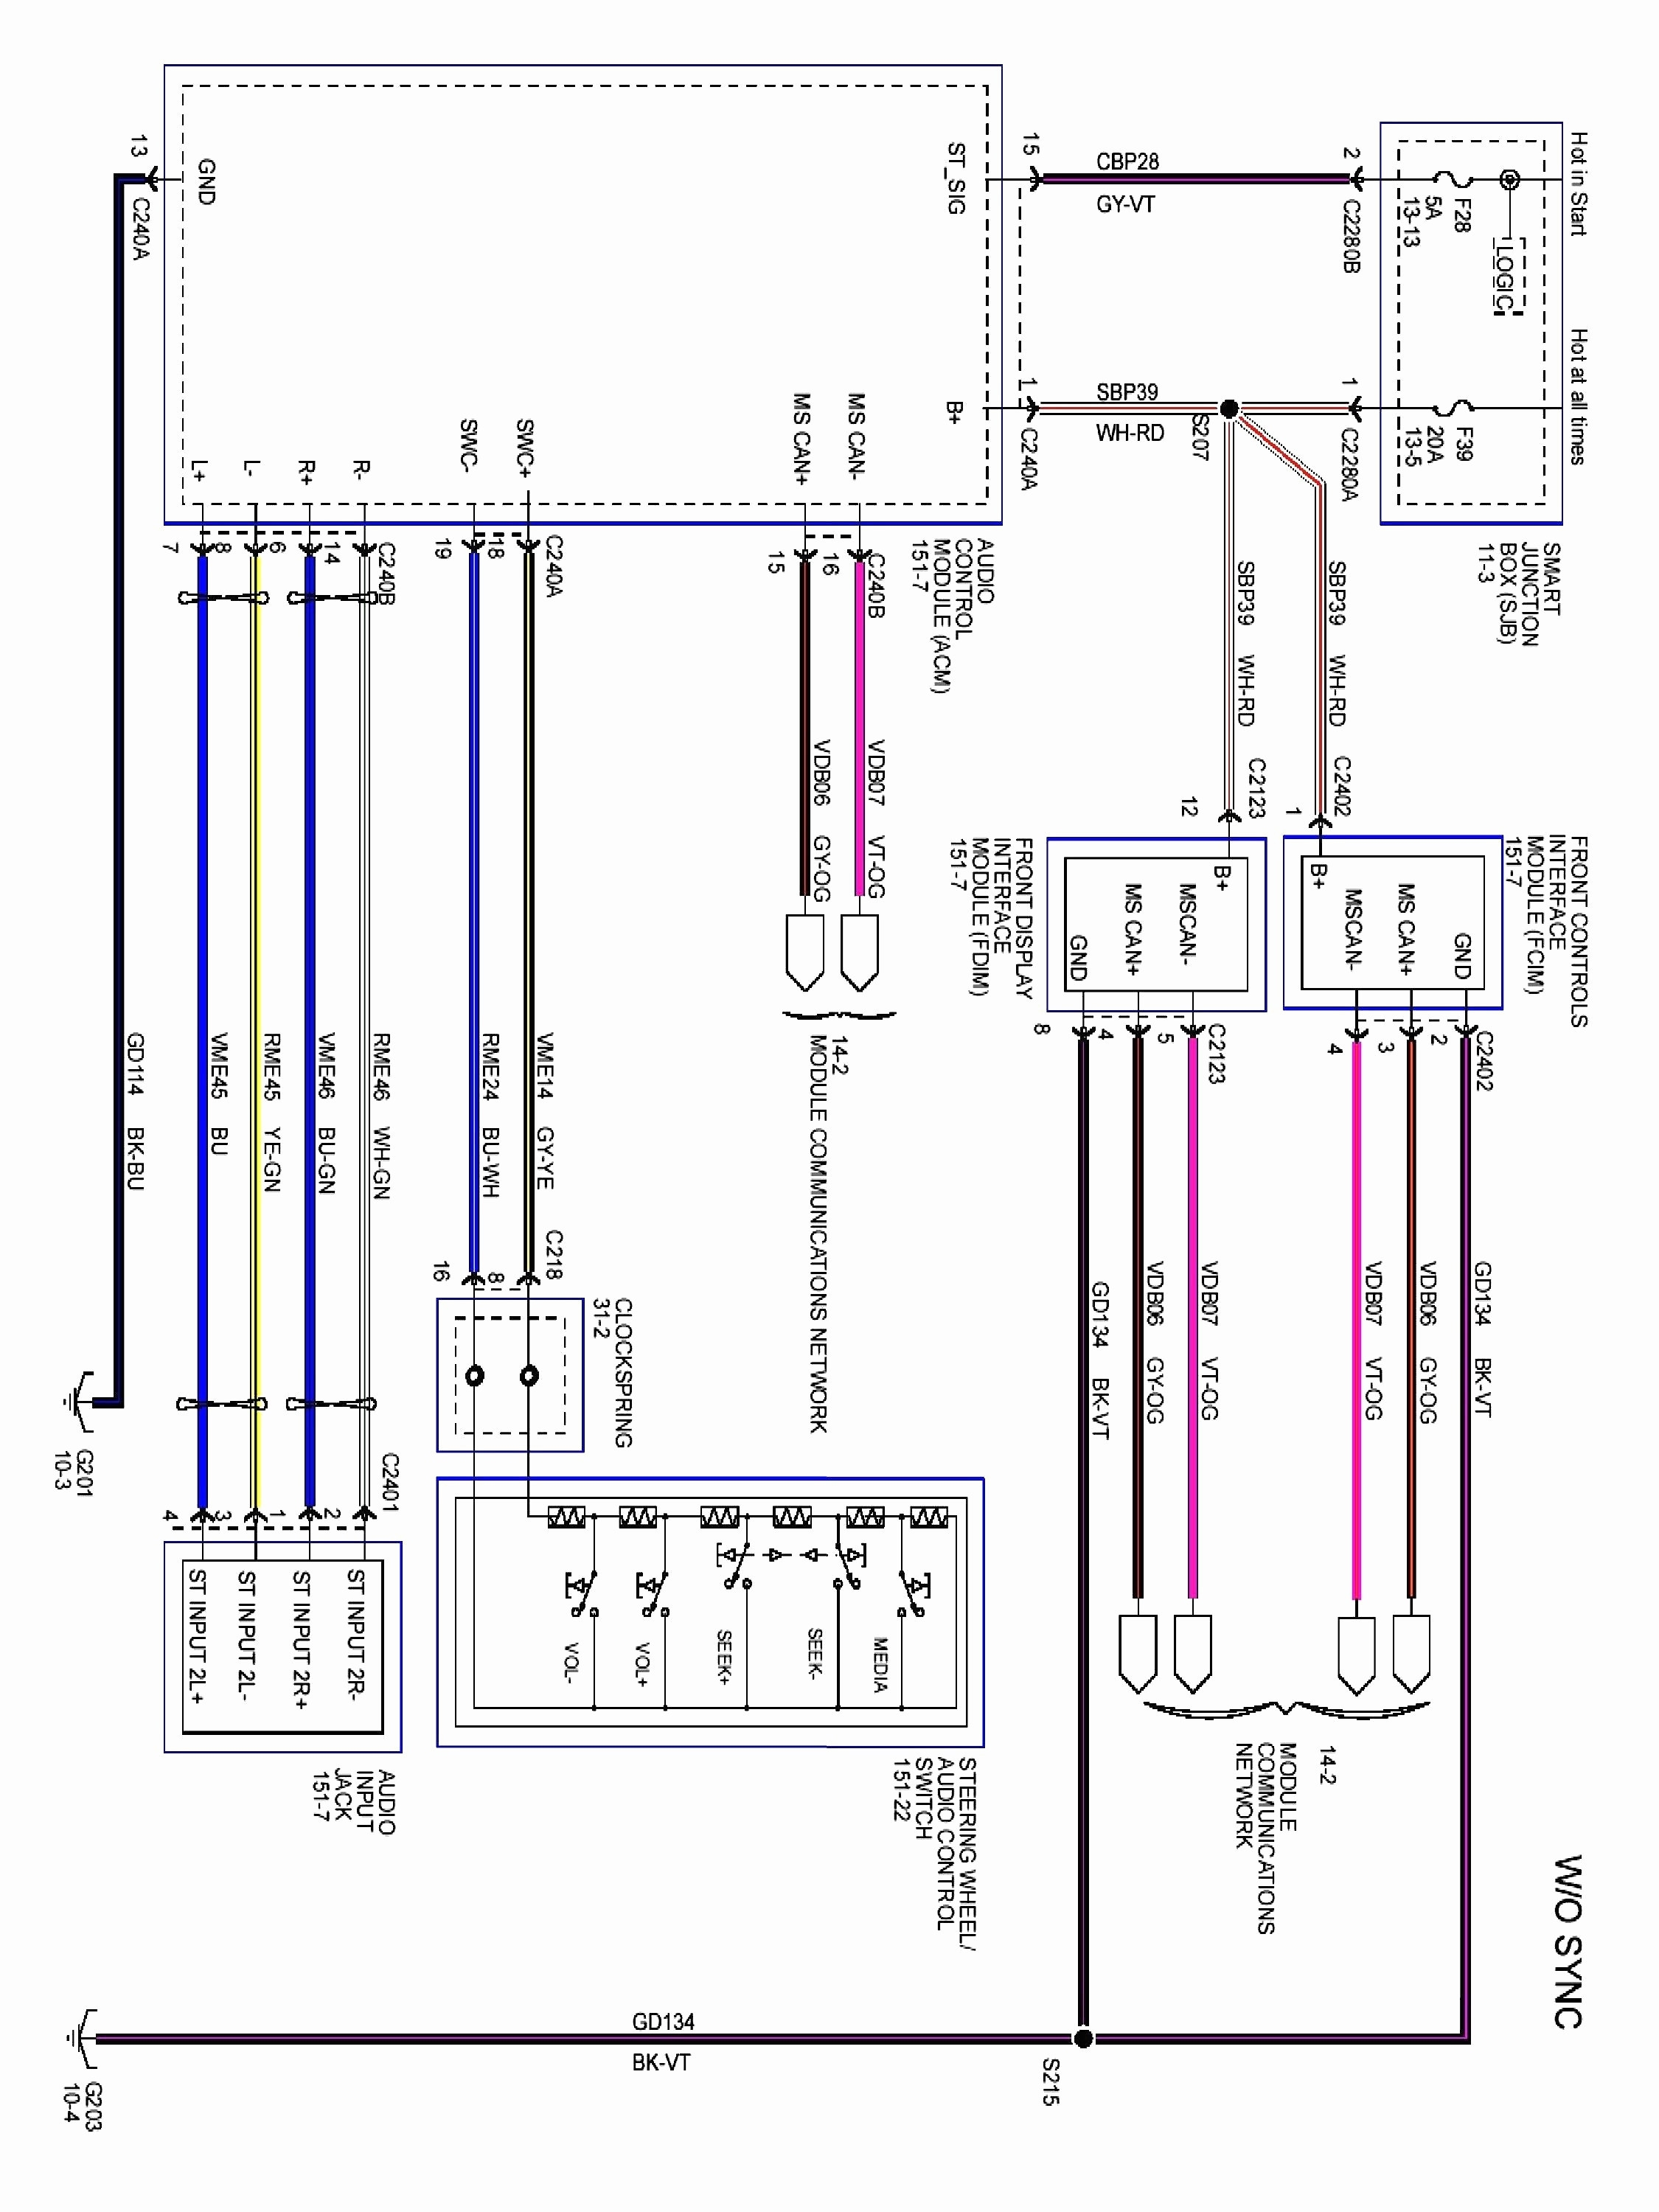 Pioneer Stereo Wiring Diagram - Wiring Diagram for Amplifier Car Stereo Best Amplifier Wiring 19s